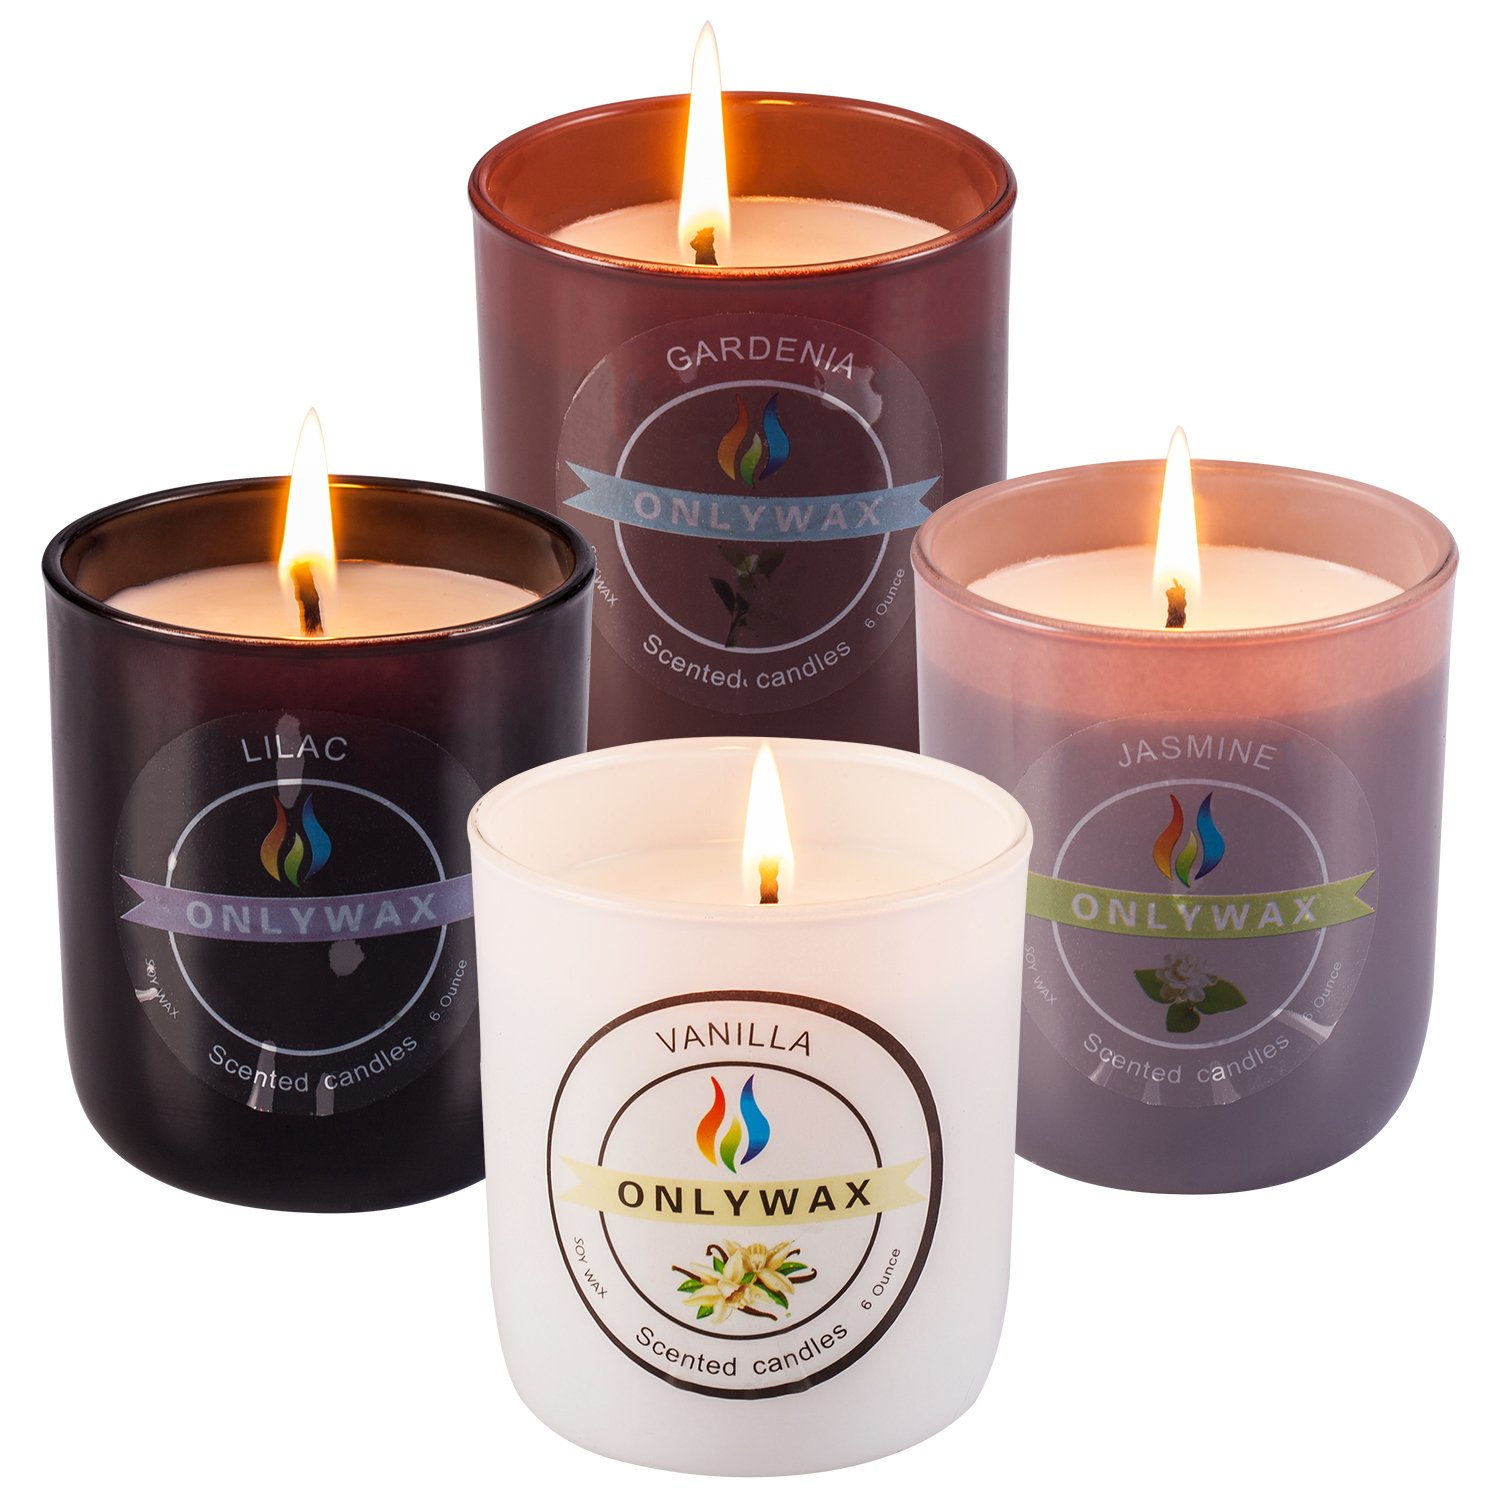 Onlywax Scented Candles 4 Pack Gift Set,Vanilla, Gardenia, Jasmine And Lilac, Aromatherapy Glass Jar Holidays Votive Soy Candle.